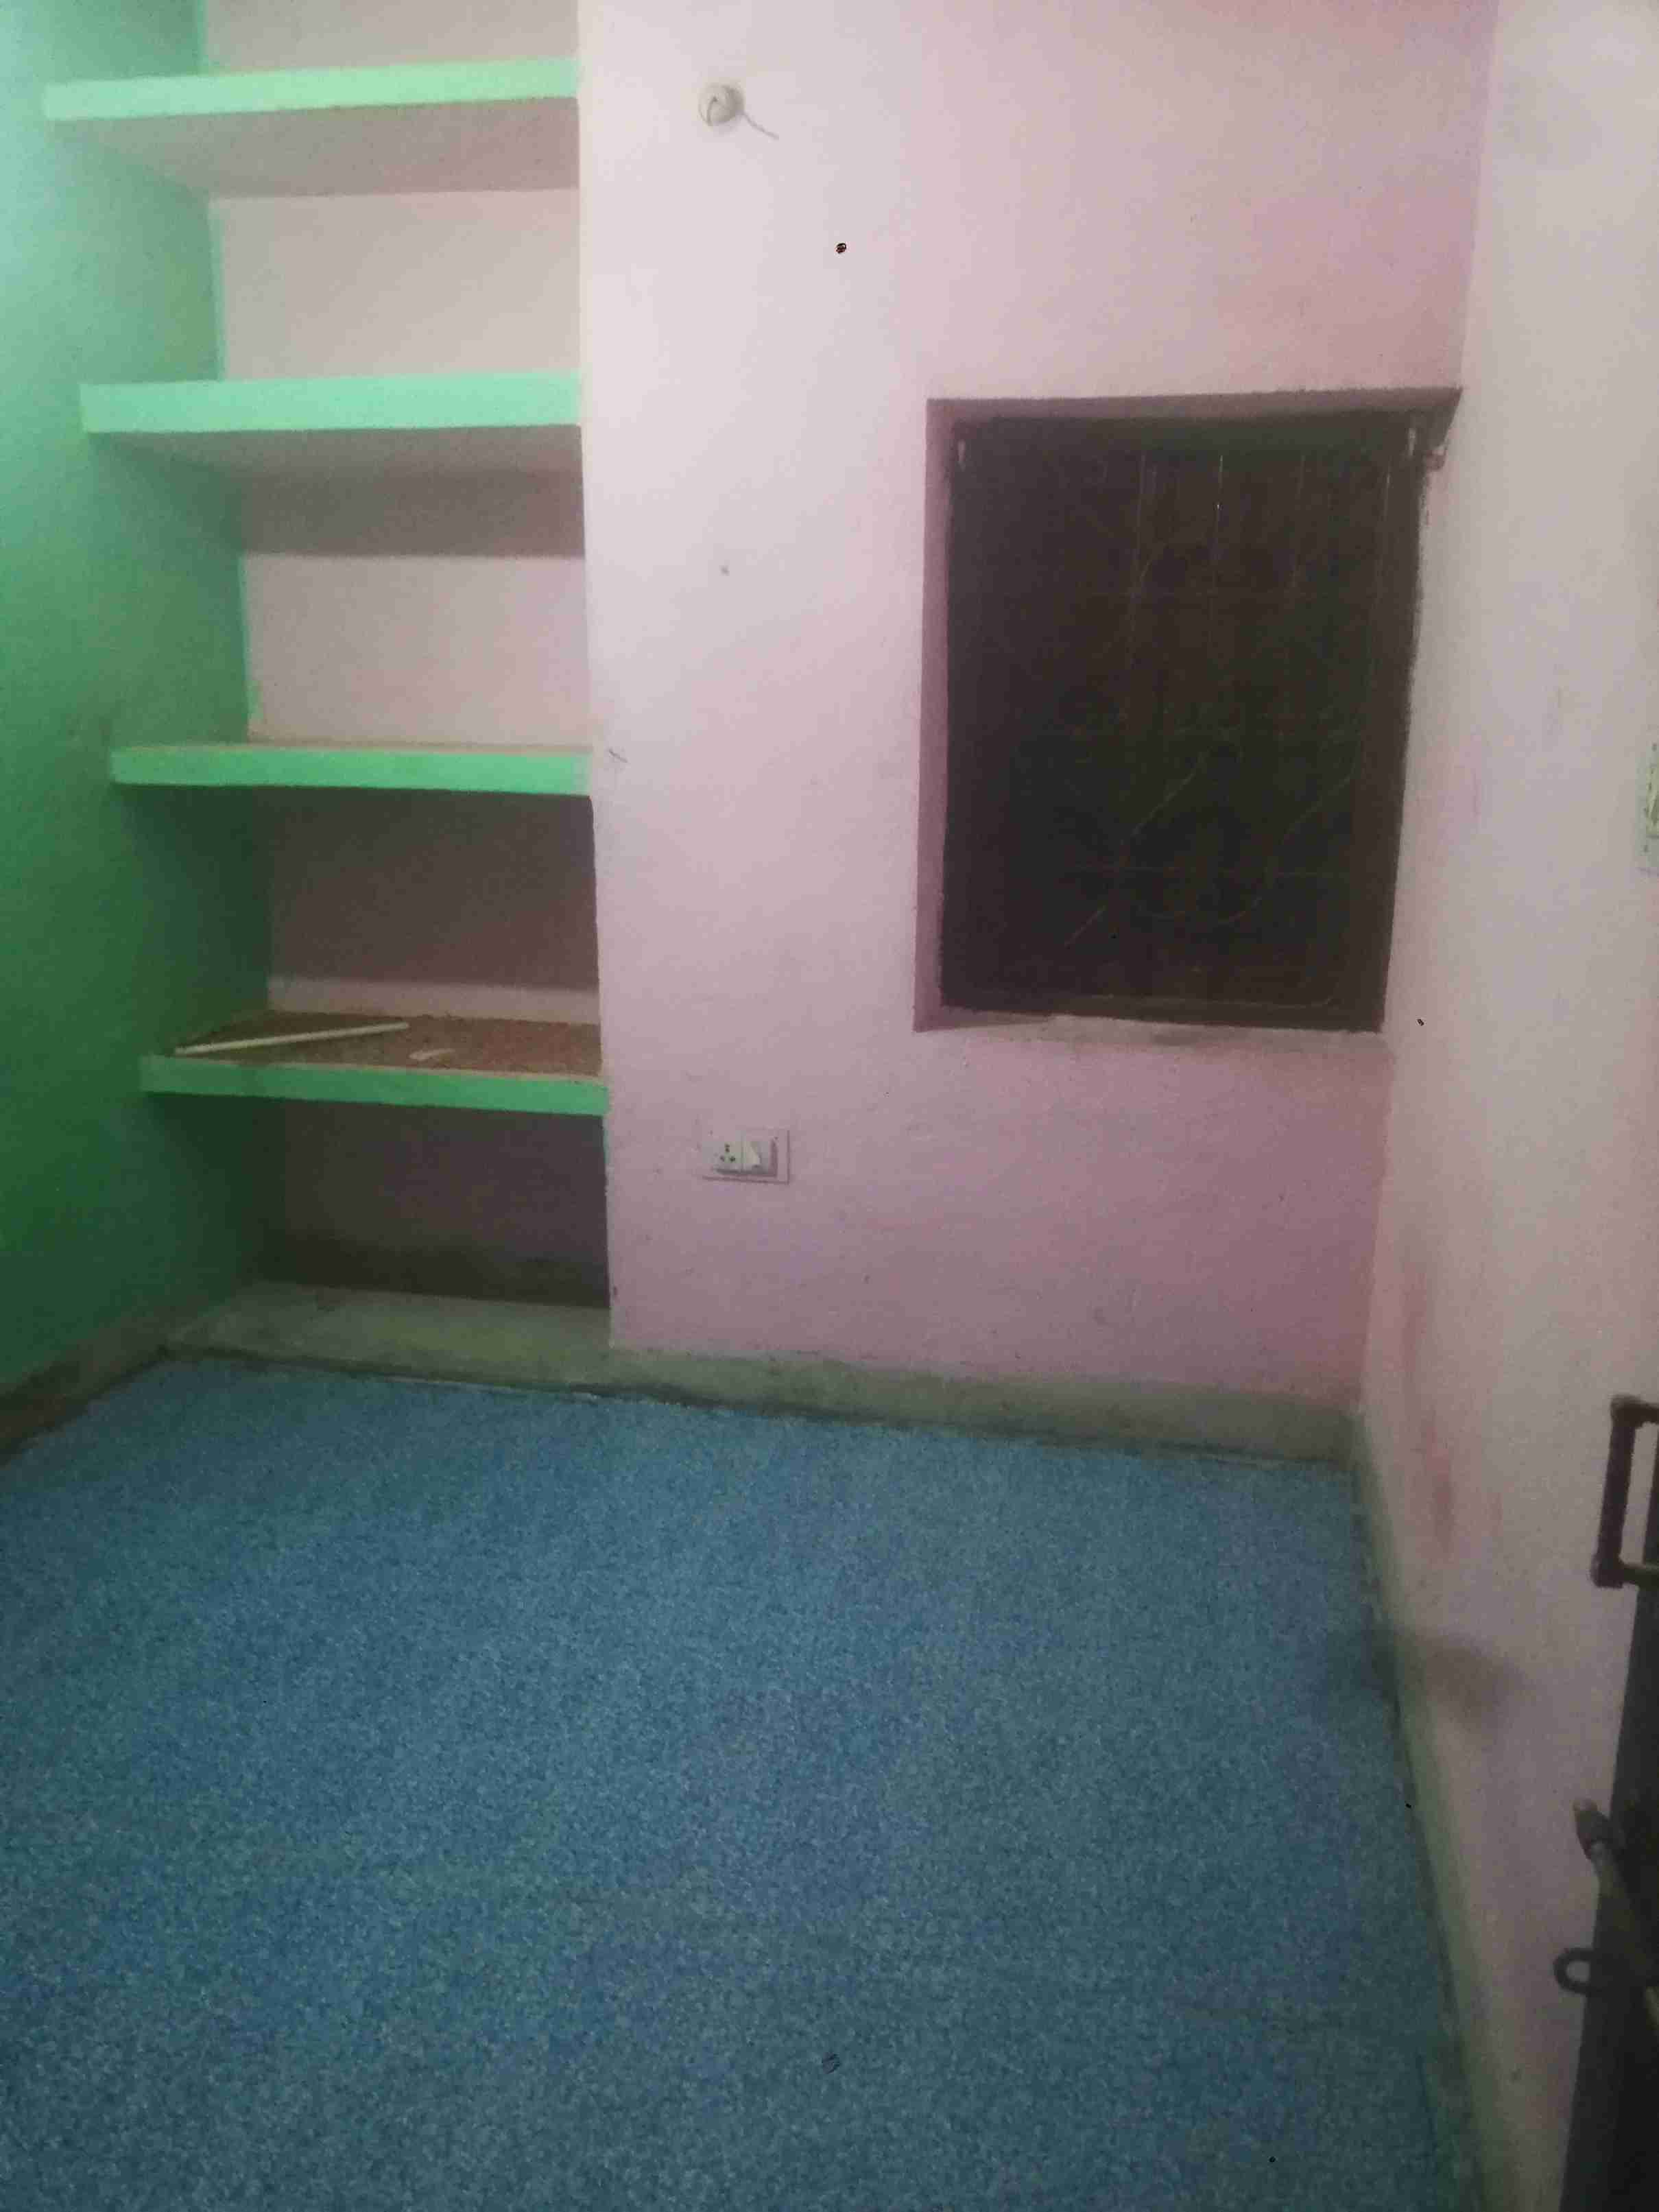 2 BHK Apartment / Flat for Rent 550 Sq. Feet at Patna, Anisabad